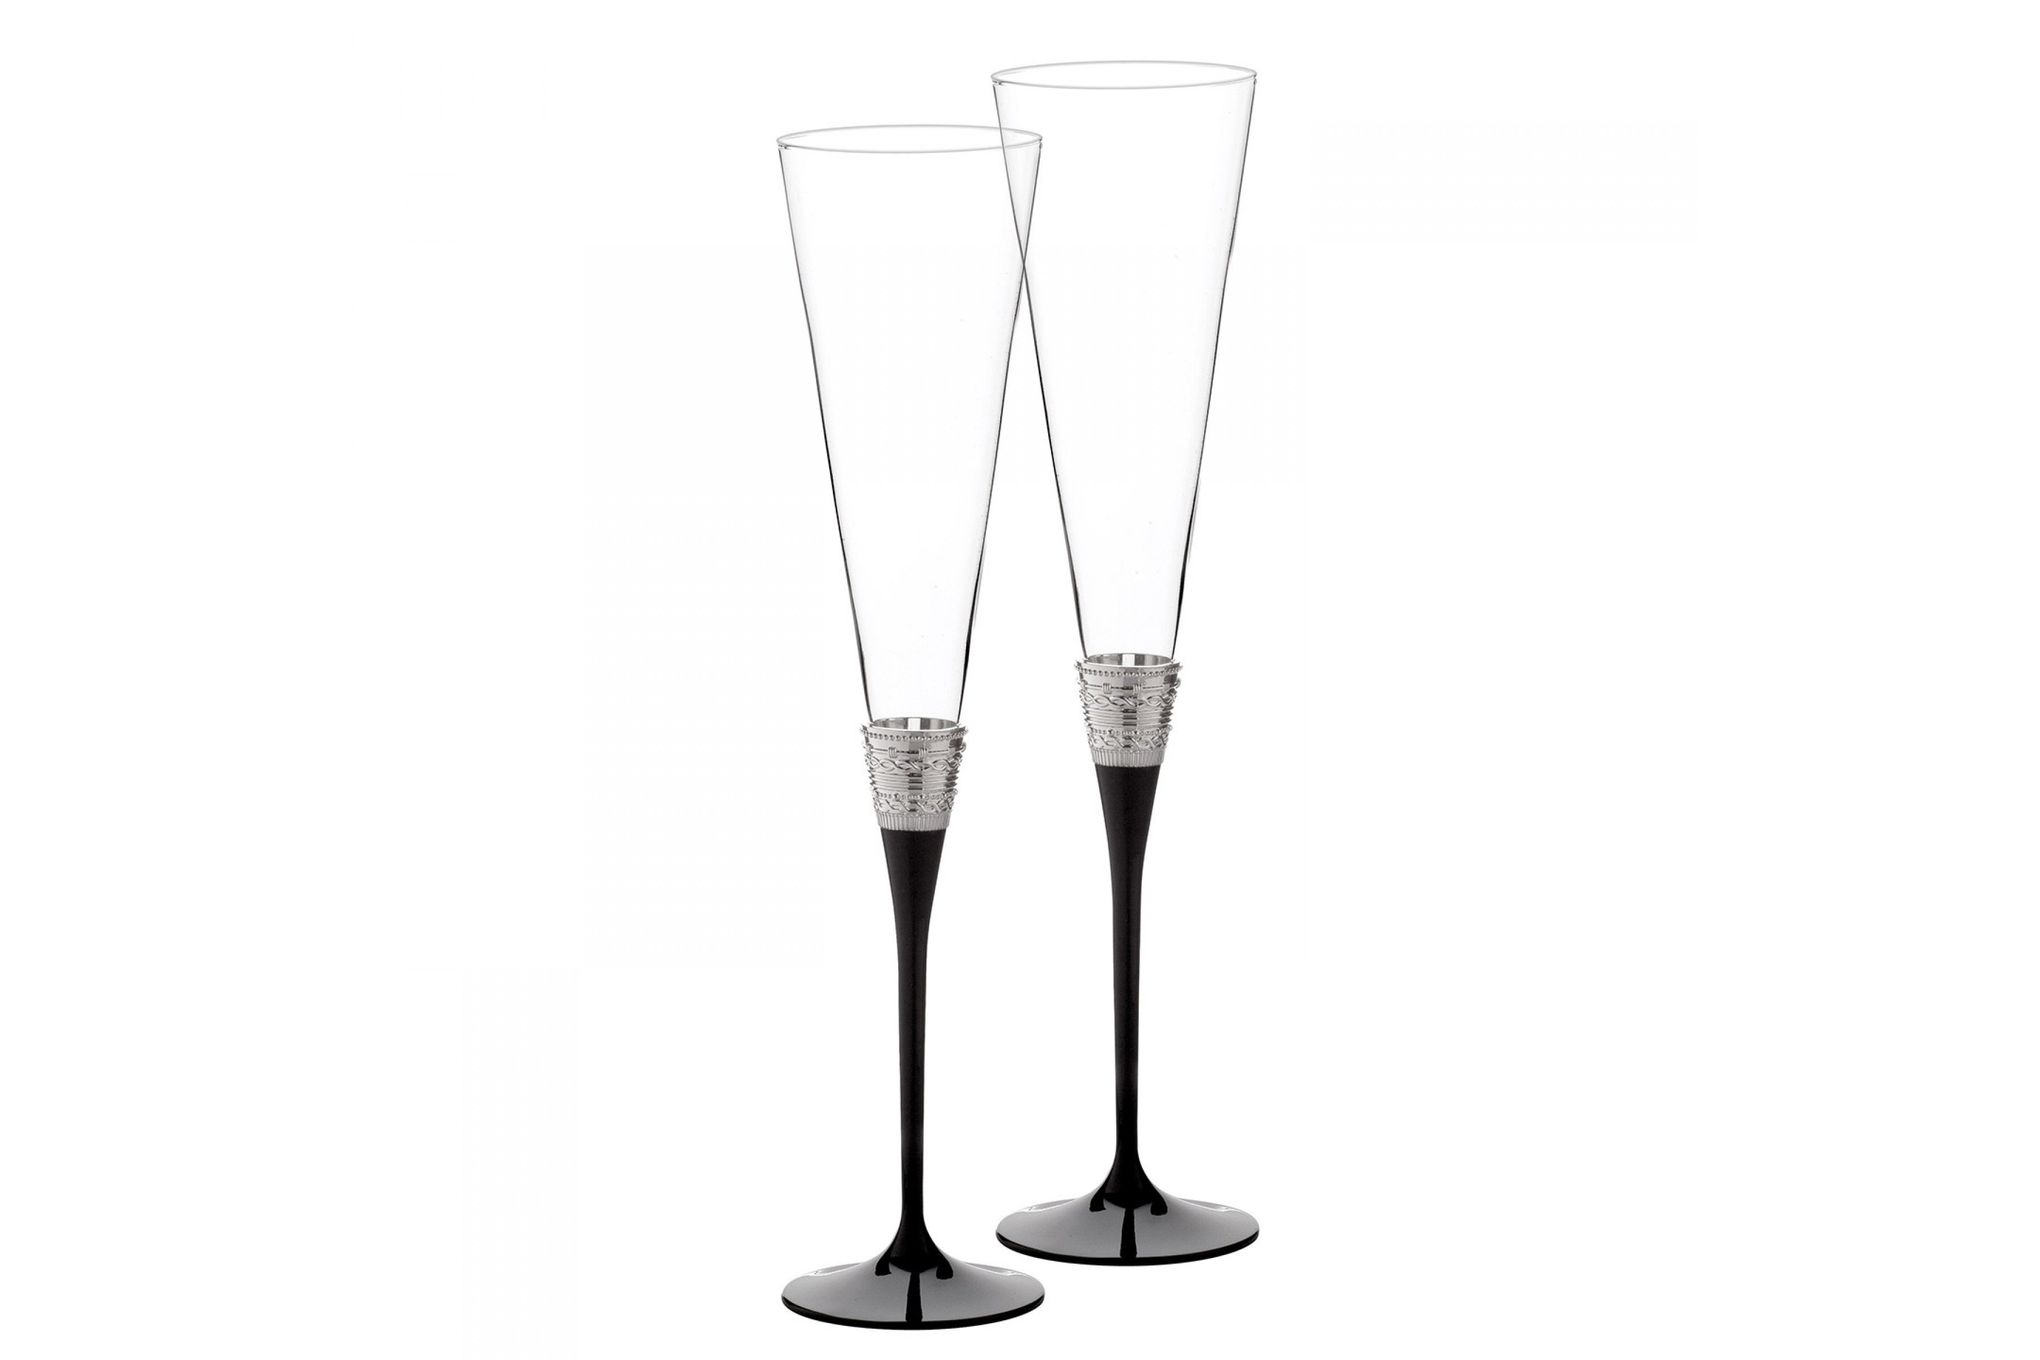 Vera Wang for Wedgwood Gifts & Accessories Toasting Flute Pair With Love Noir thumb 1